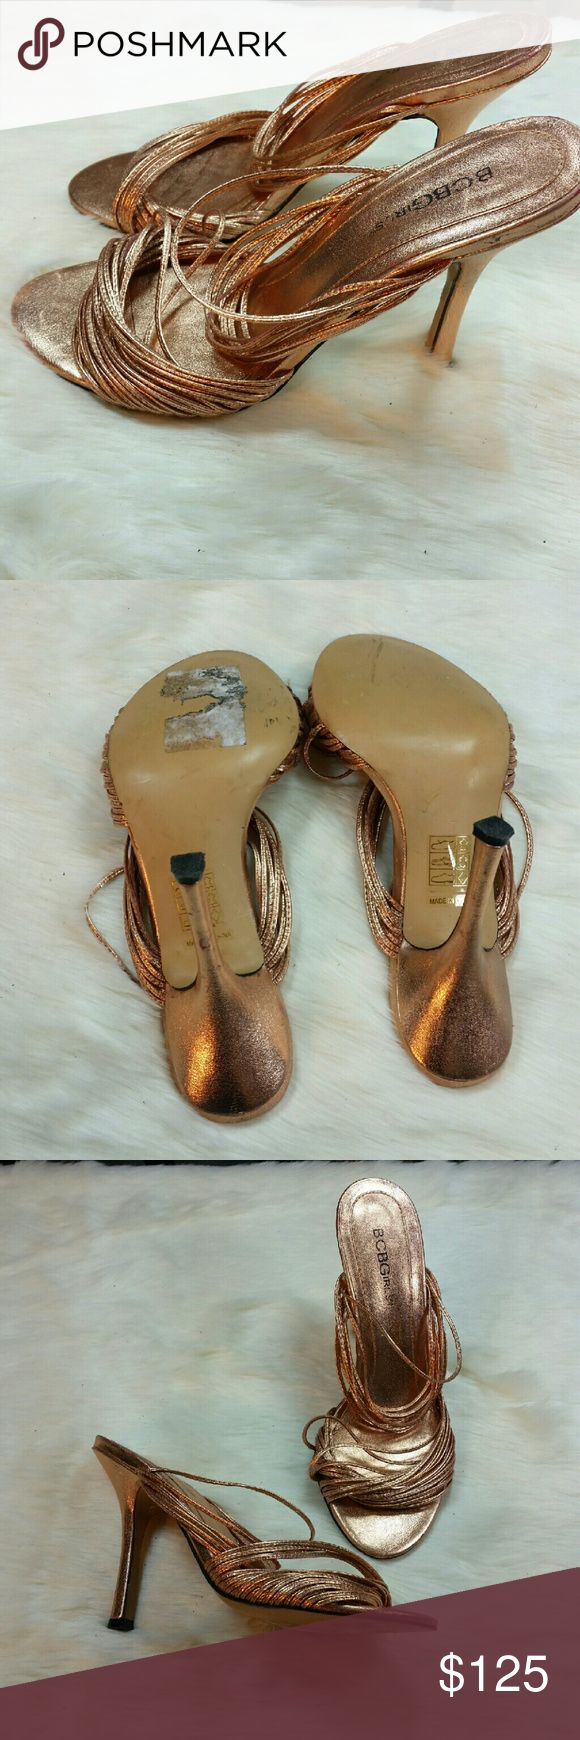 BBC GIRLS copper metallic strappy heels Copper metallic strappy slip on sandals heels. Good condition with some minor wear. Heels are 4 inches. BCBGirls Shoes Heels